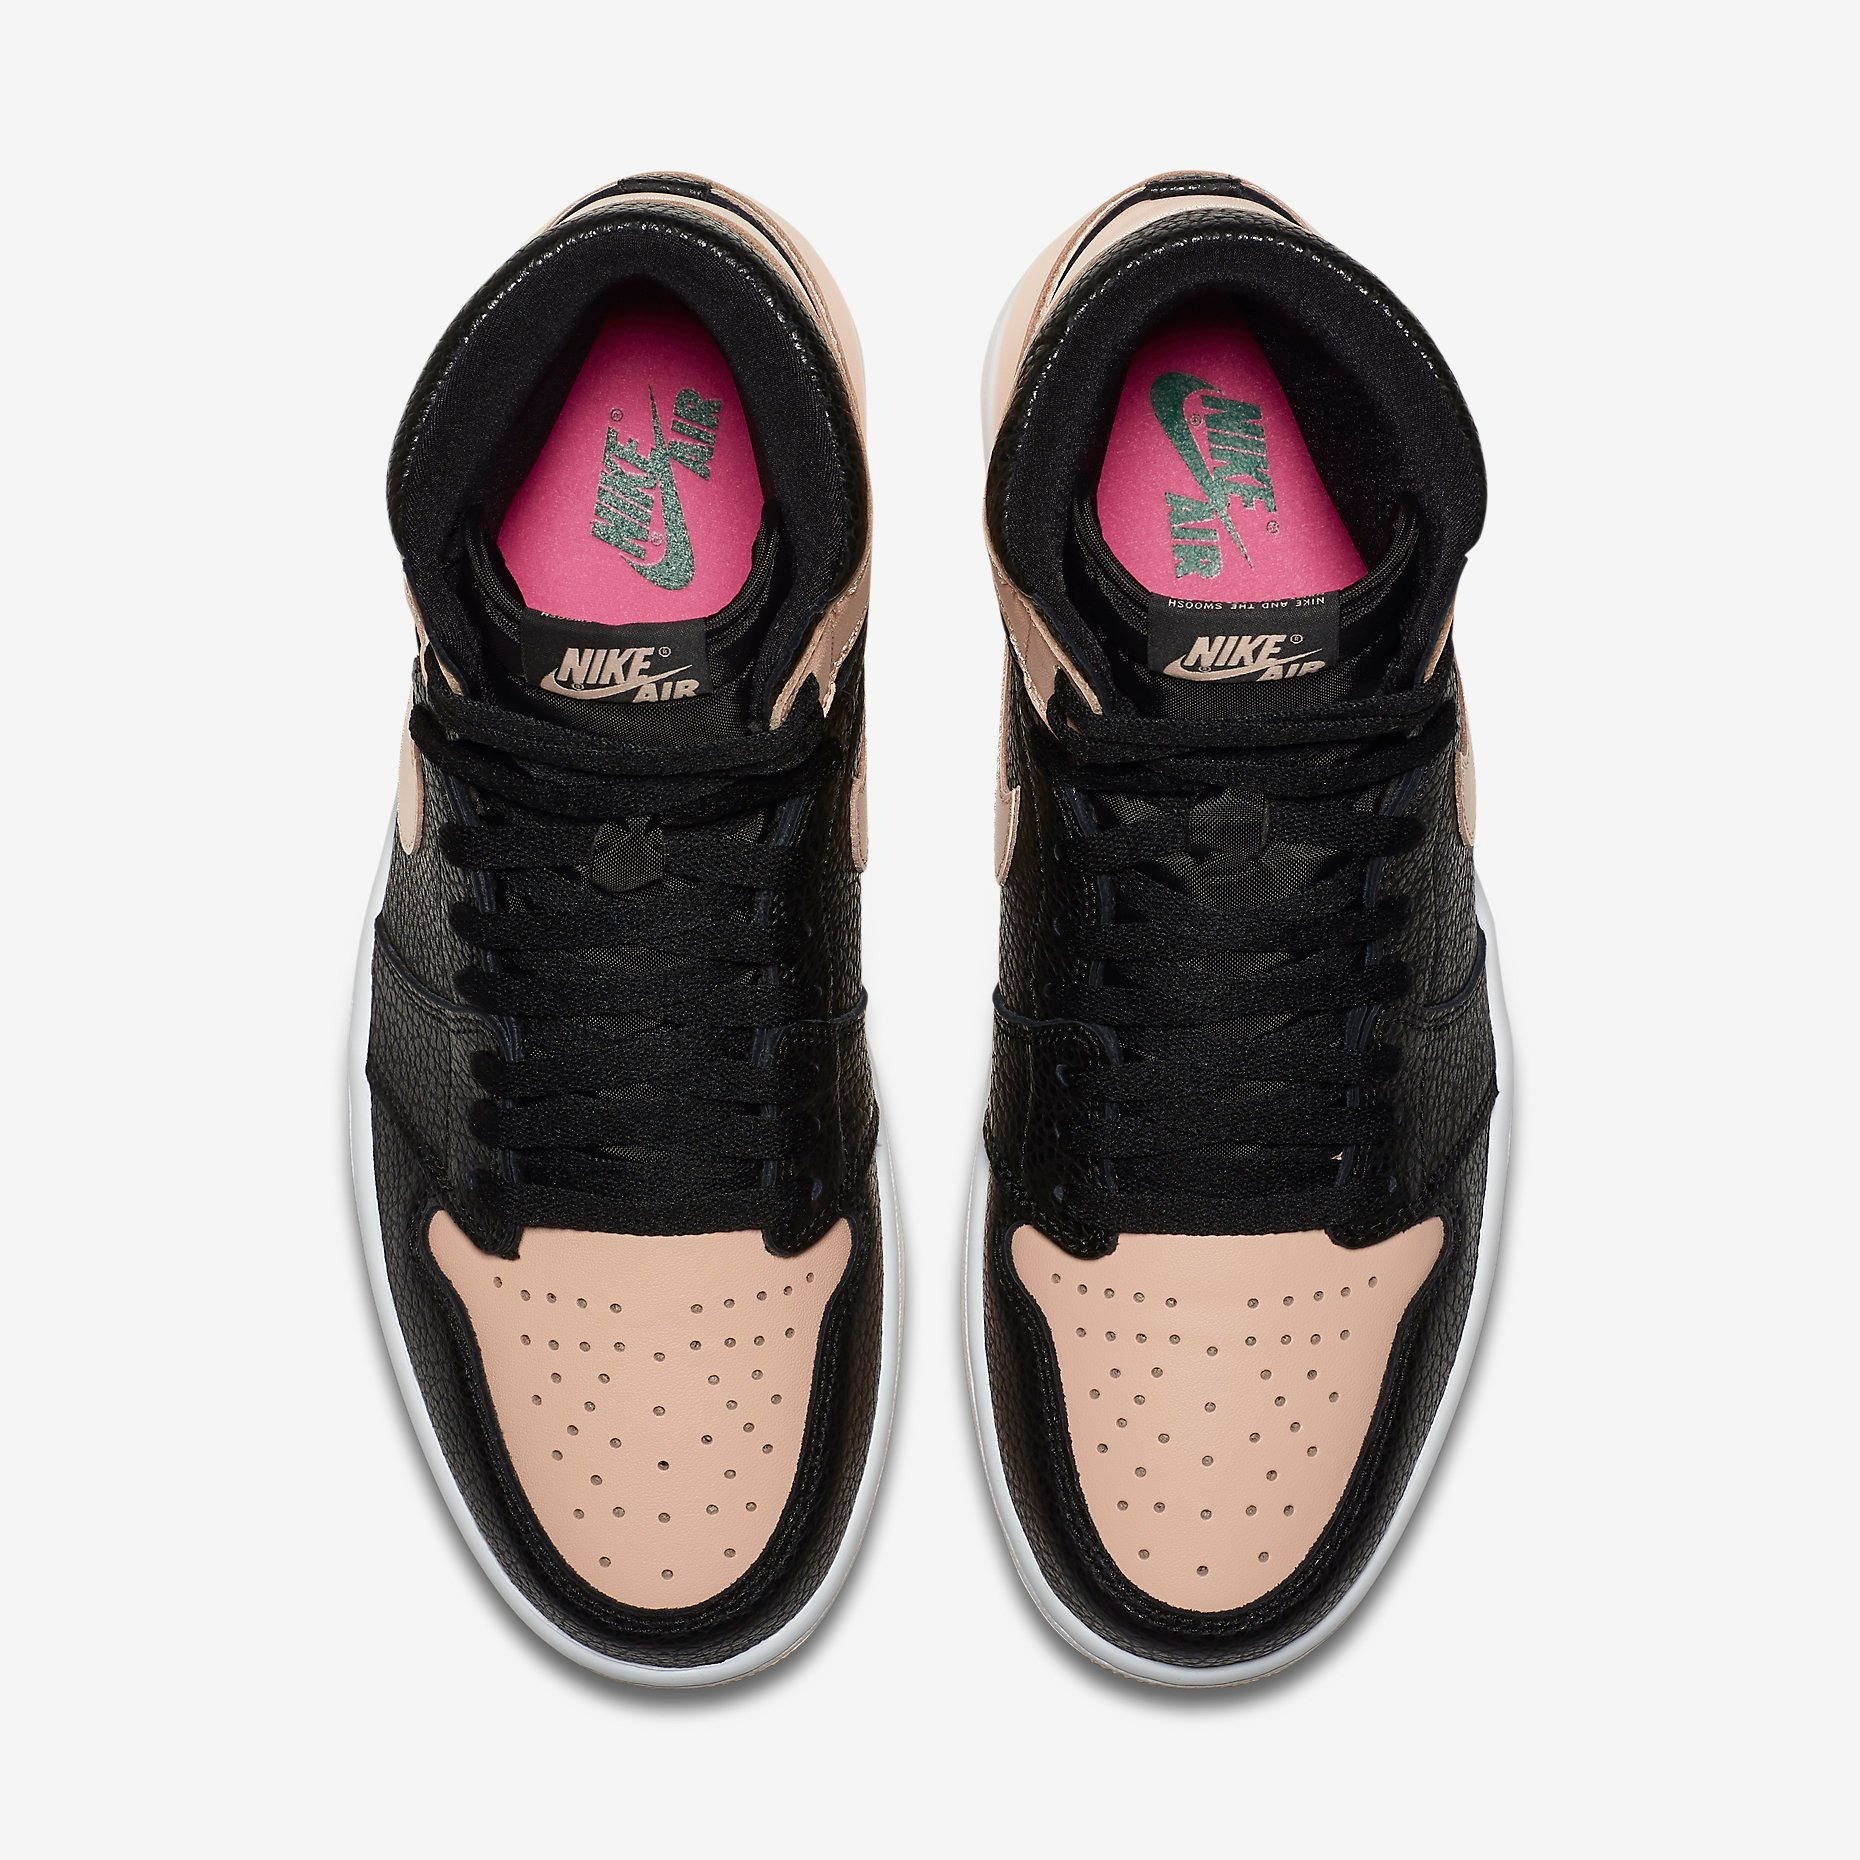 555088 081 Air Jordan 1 Retro High OG Crimson Tint 3